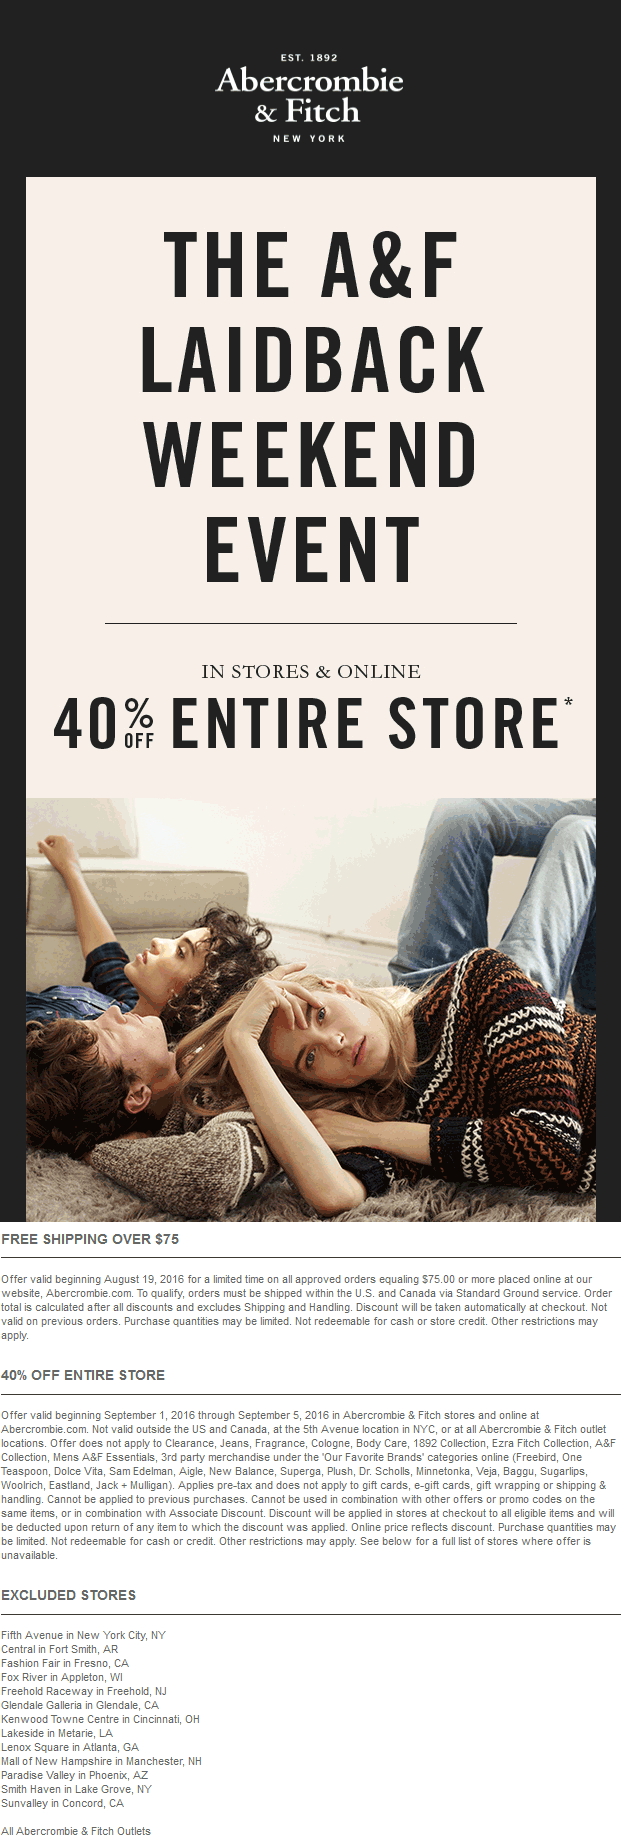 Abercrombie & Fitch Coupon February 2018 40% off everything at Abercrombie & Fitch, ditto online